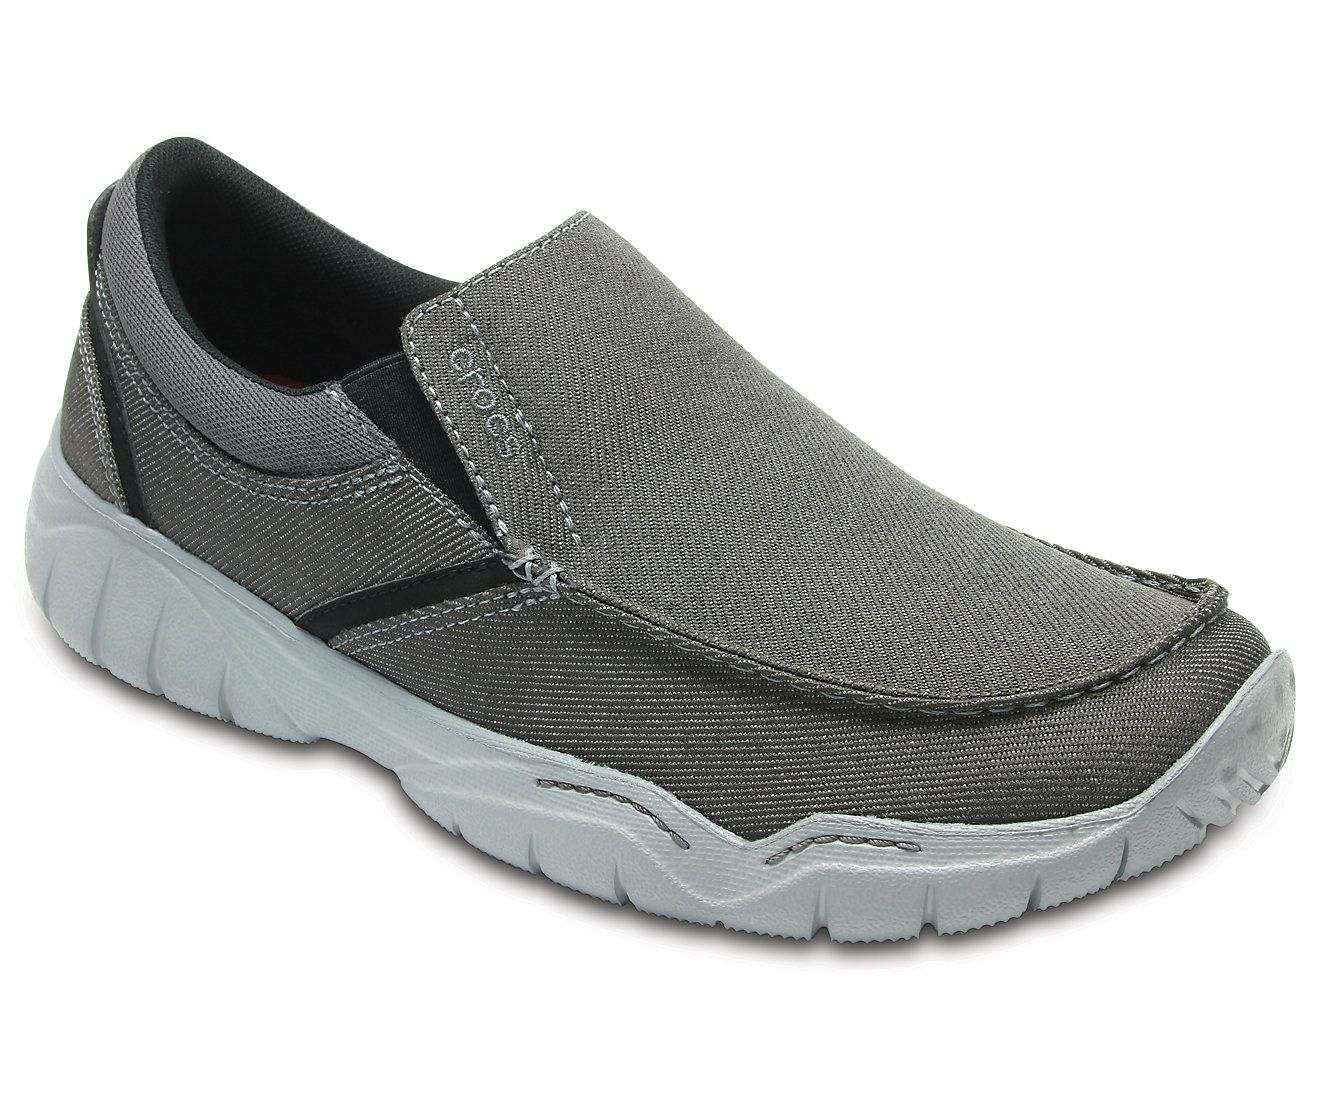 Crocs Swiftwater Casual Slip on Outdoor Gray Casual Shoes - Buy Crocs  Swiftwater Casual Slip on Outdoor Gray Casual Shoes Online at Best Prices  in India on ... 826785baec5